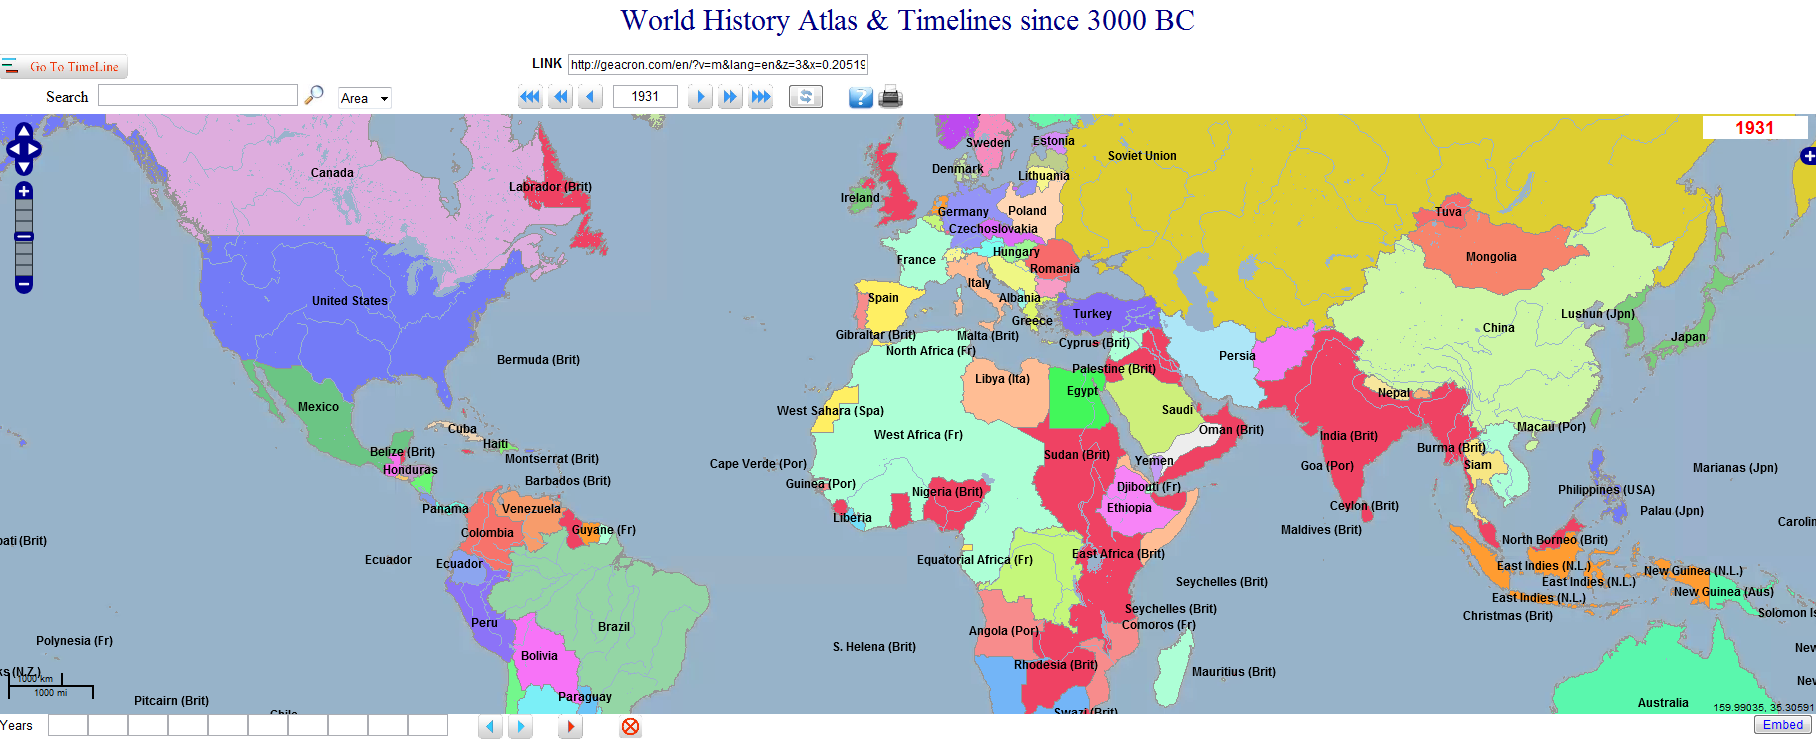 World history atlas and timelines since 3000 bce interactive interactive map 5015 years of world history 3000 bc up and until morelink to interactive map can be clicked through per year from 3000 bc up and gumiabroncs Image collections